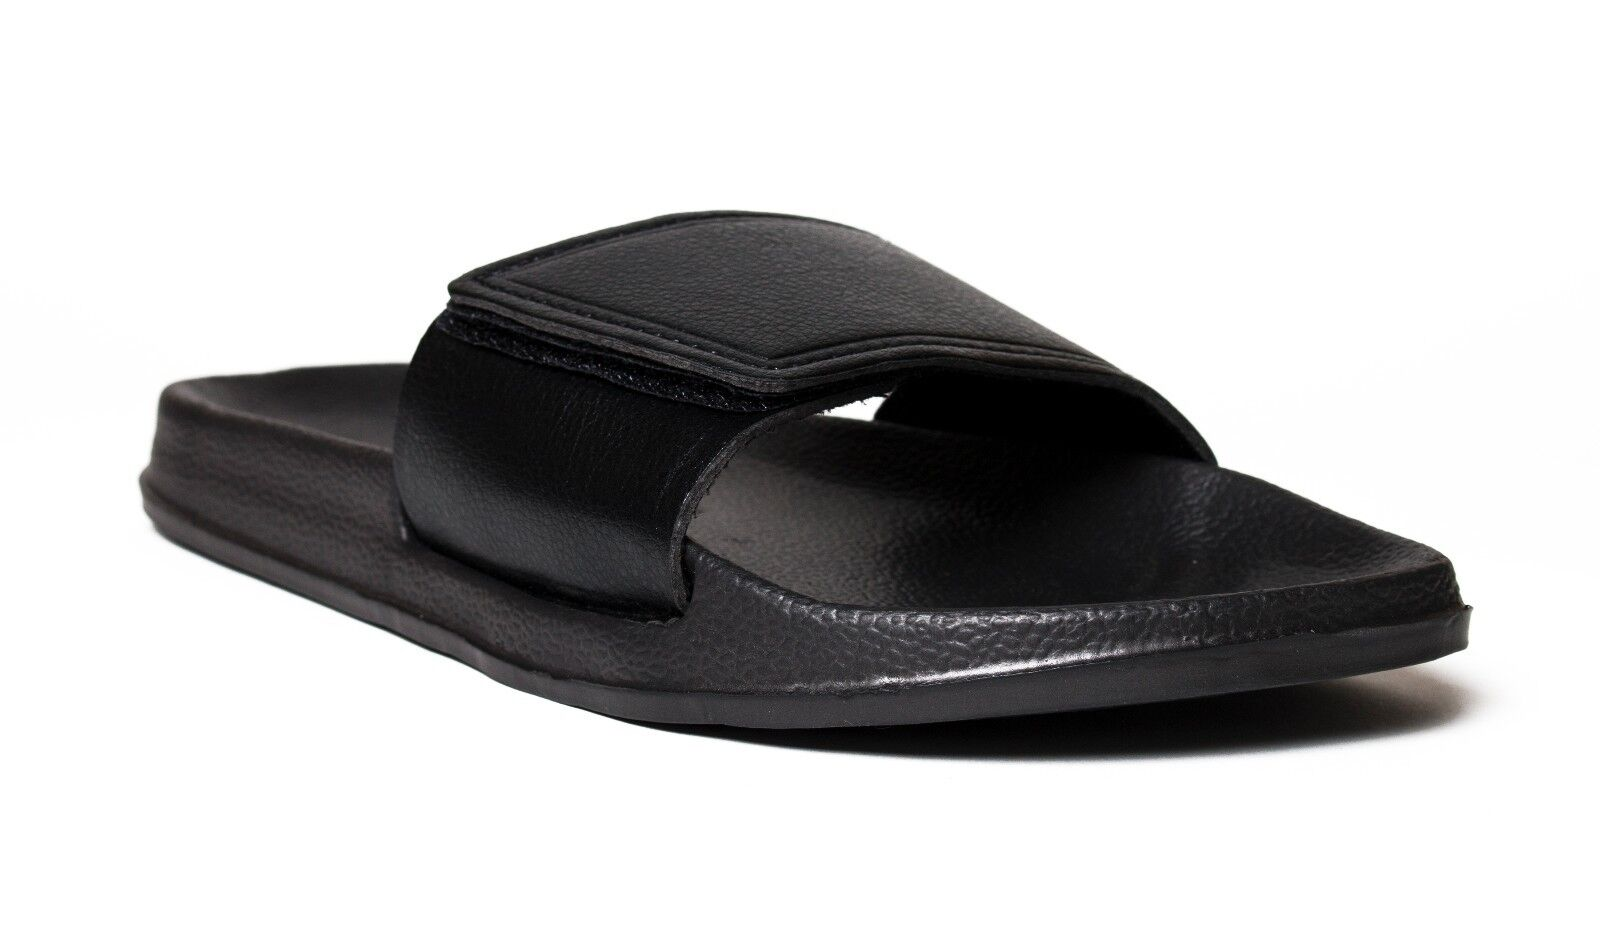 HG Benassi Mens Slides Beach Gym Sandals